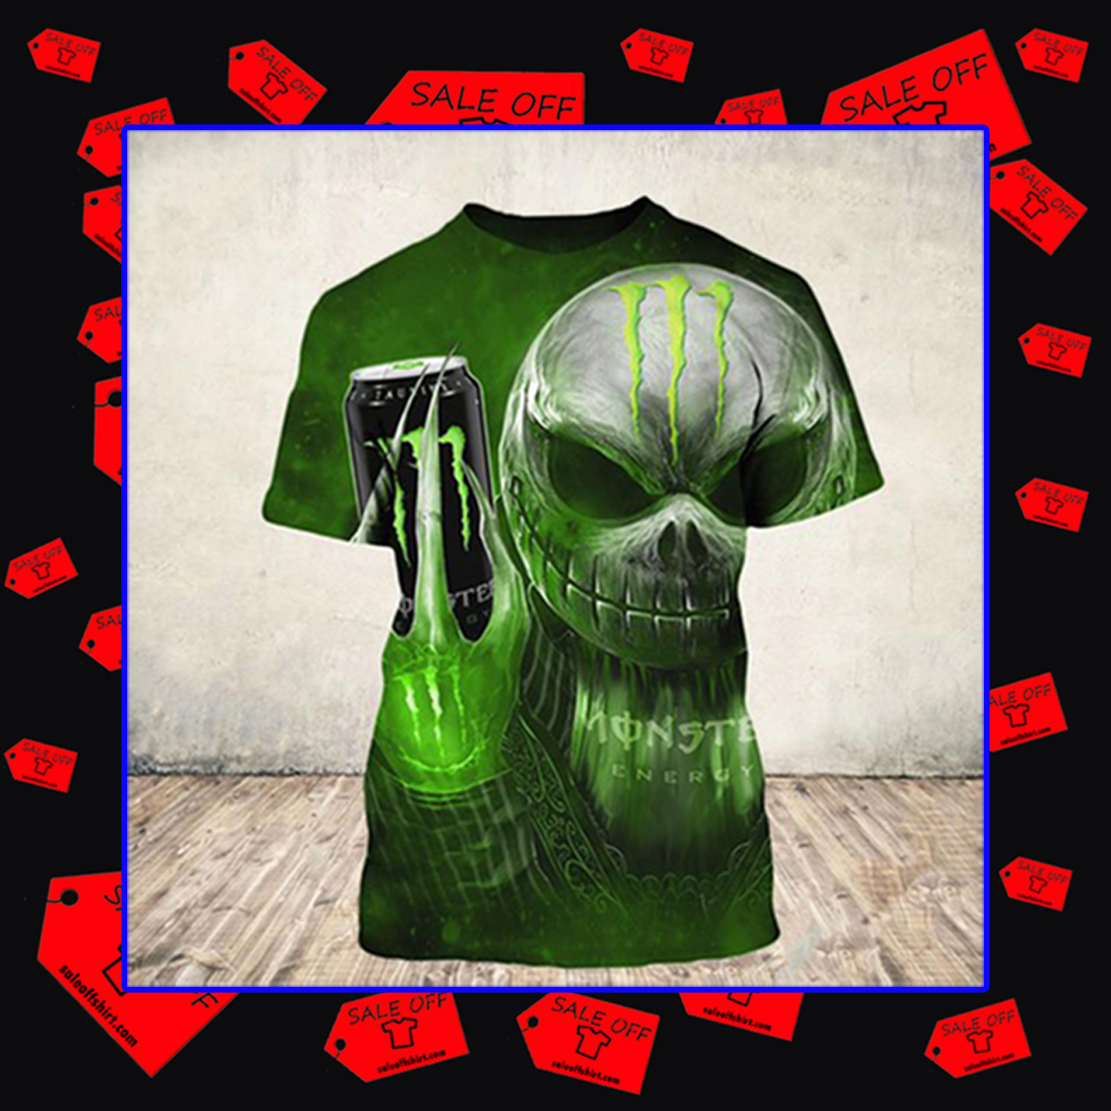 Jack Skellington Monster Energy shirt 3D